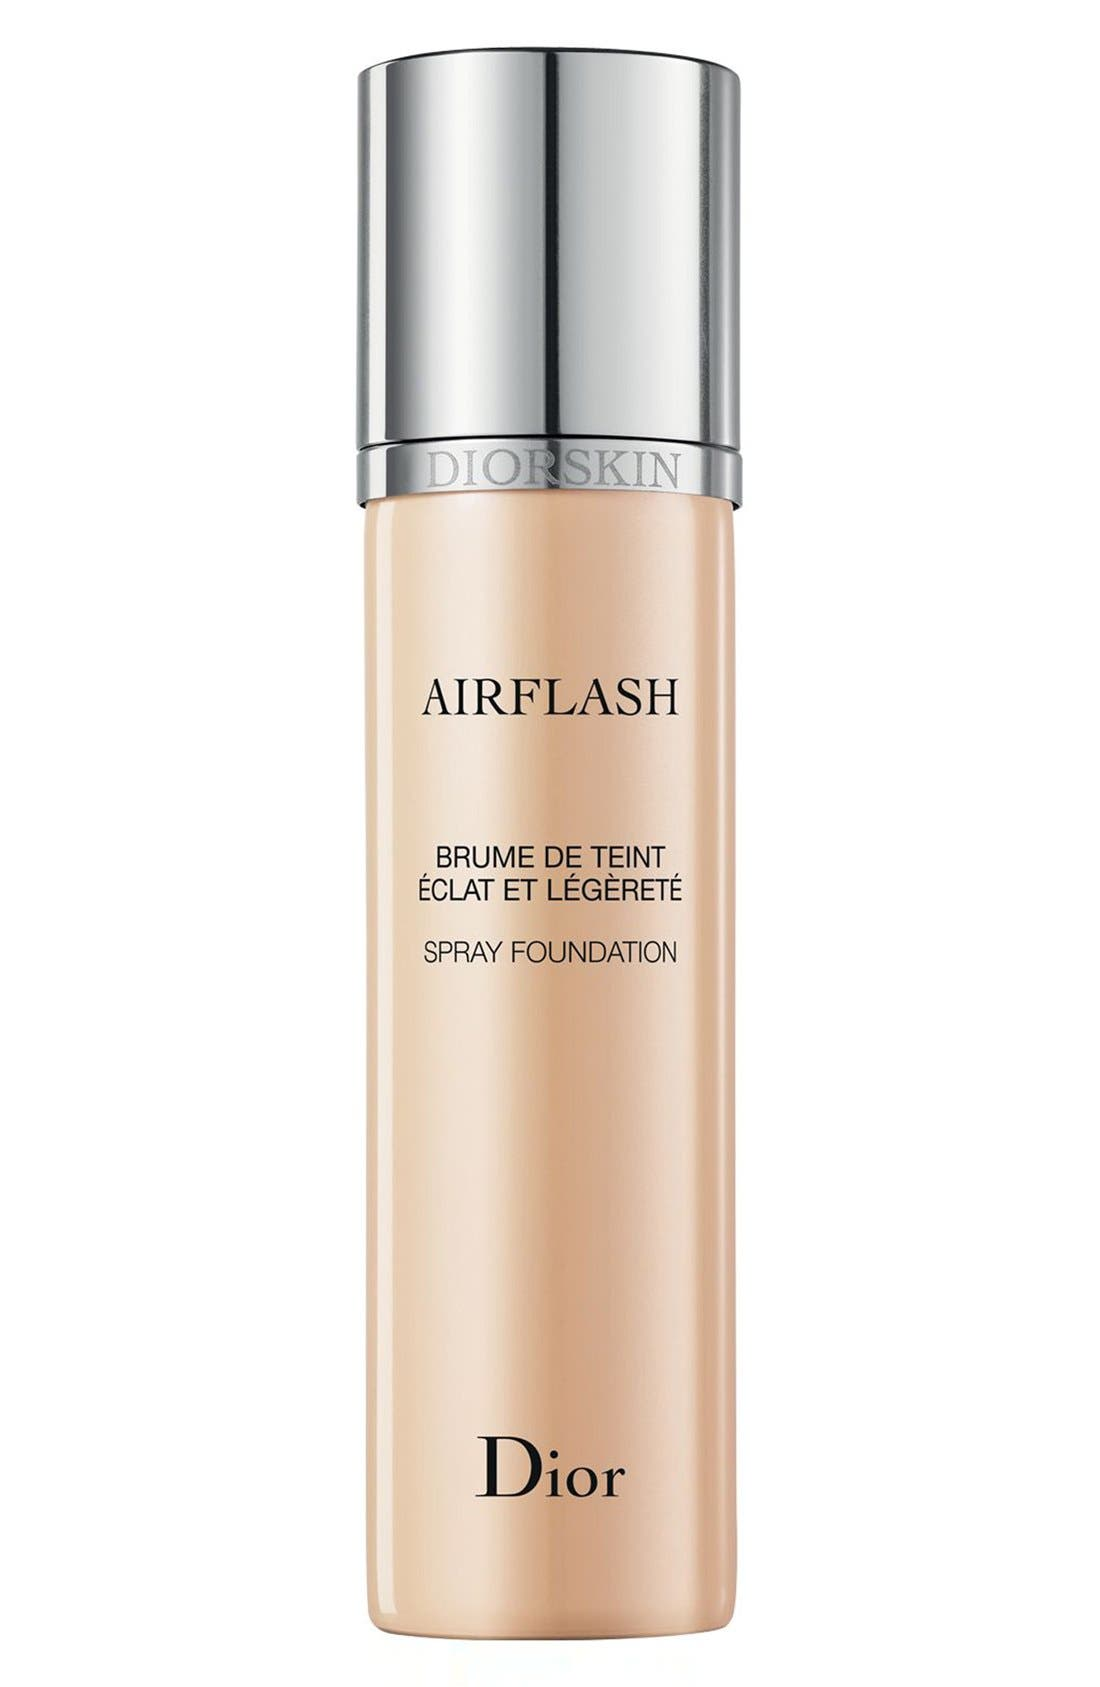 'Diorskin Airflash' Spray Foundation,                         Main,                         color, 000